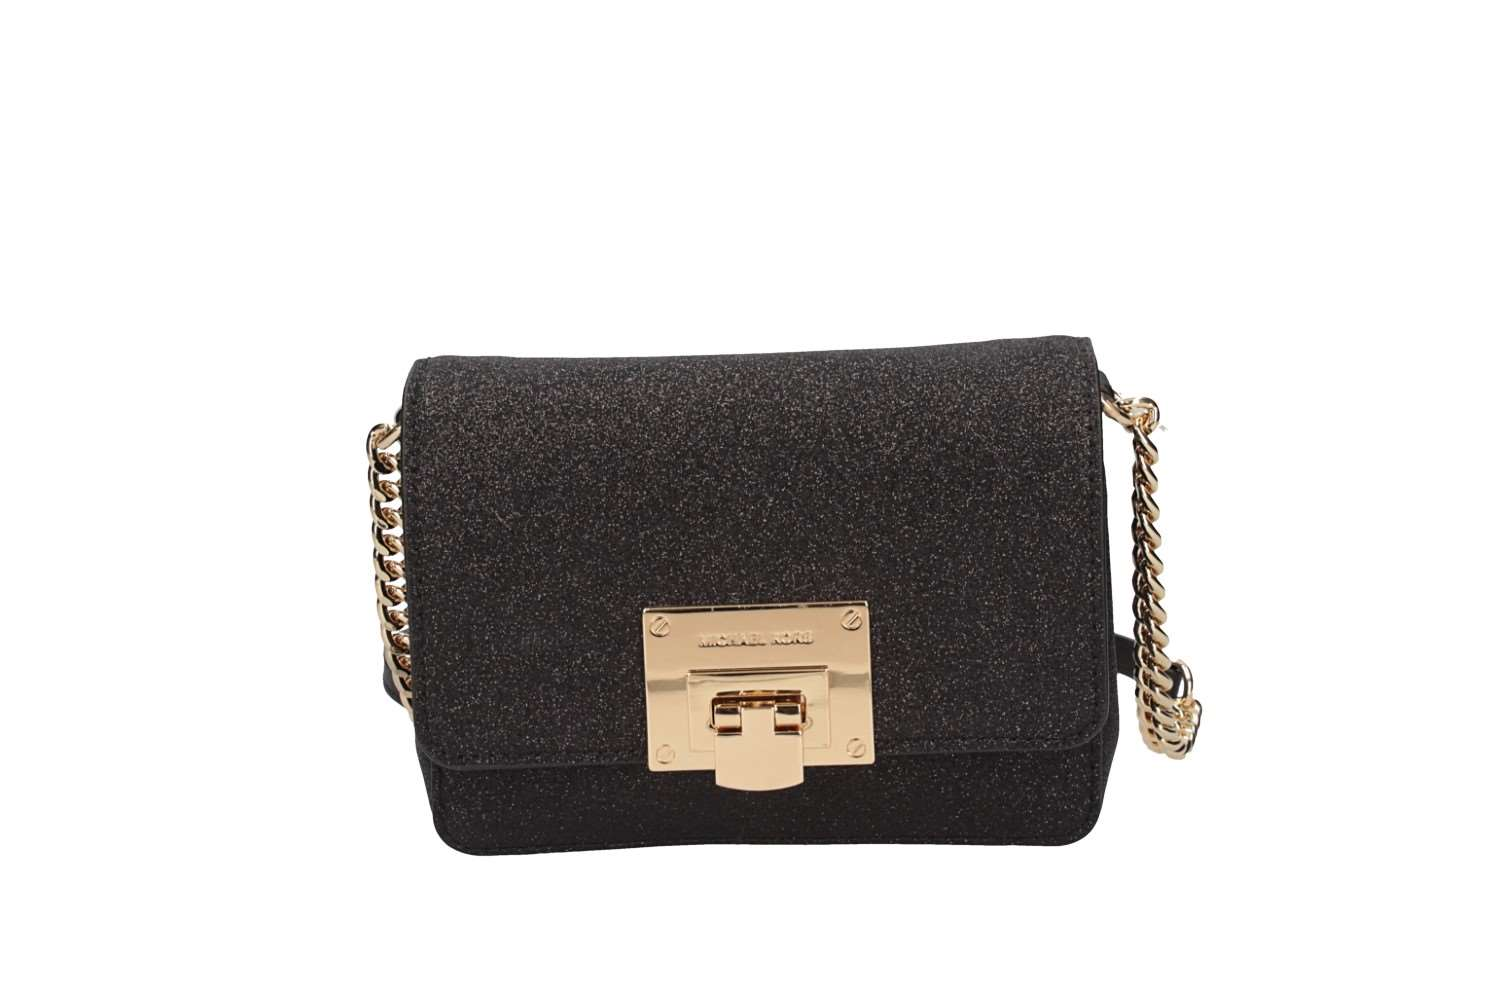 Borsa A Tracolla Donna Michael Kors 35H7GT4C10 BLACK Autunno Inverno ... a7d2acee657